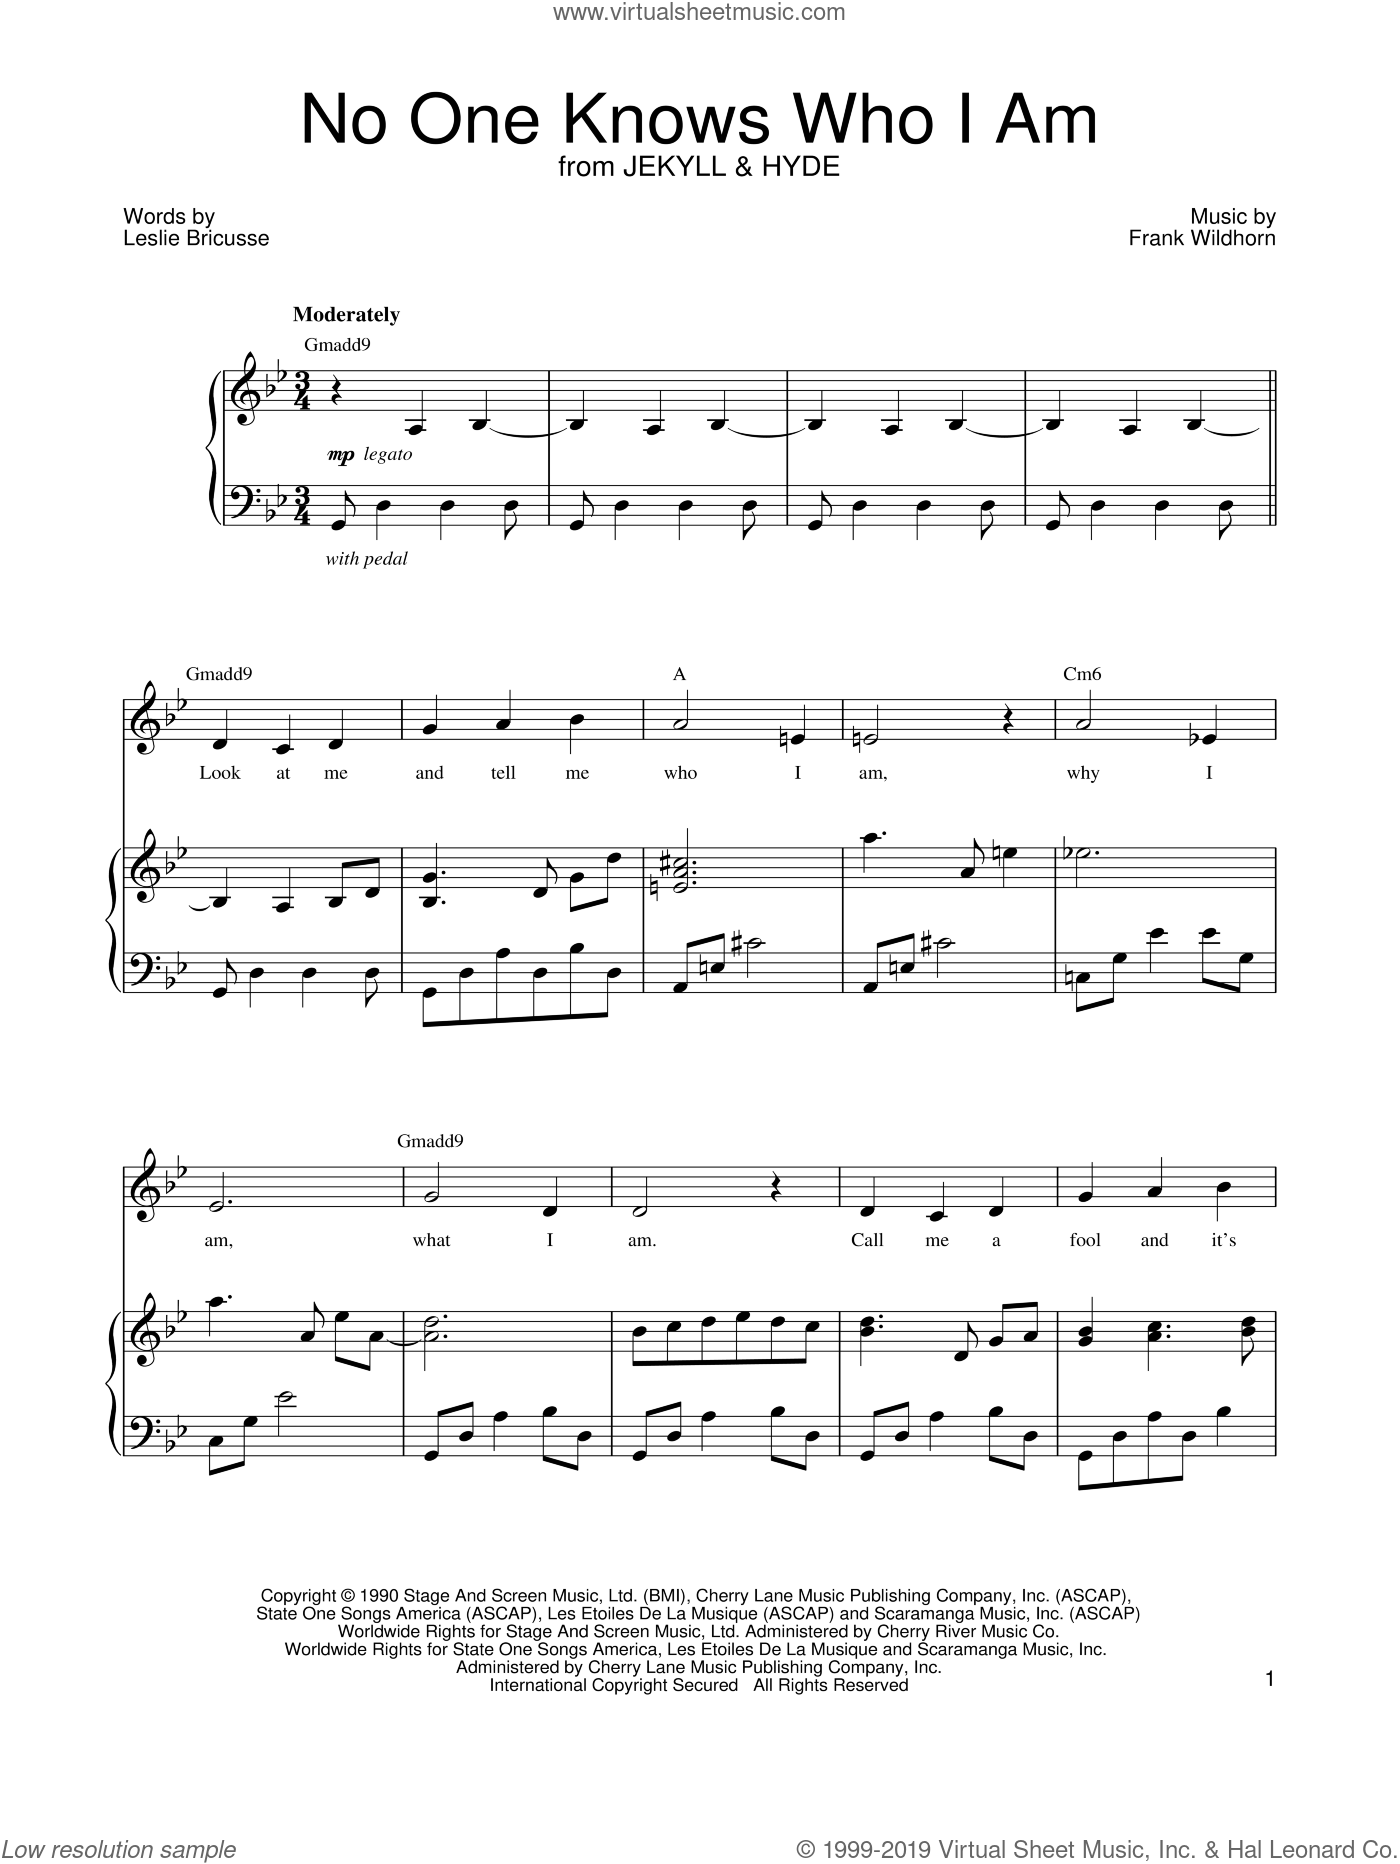 No One Knows Who I Am sheet music for voice and piano by Frank Wildhorn